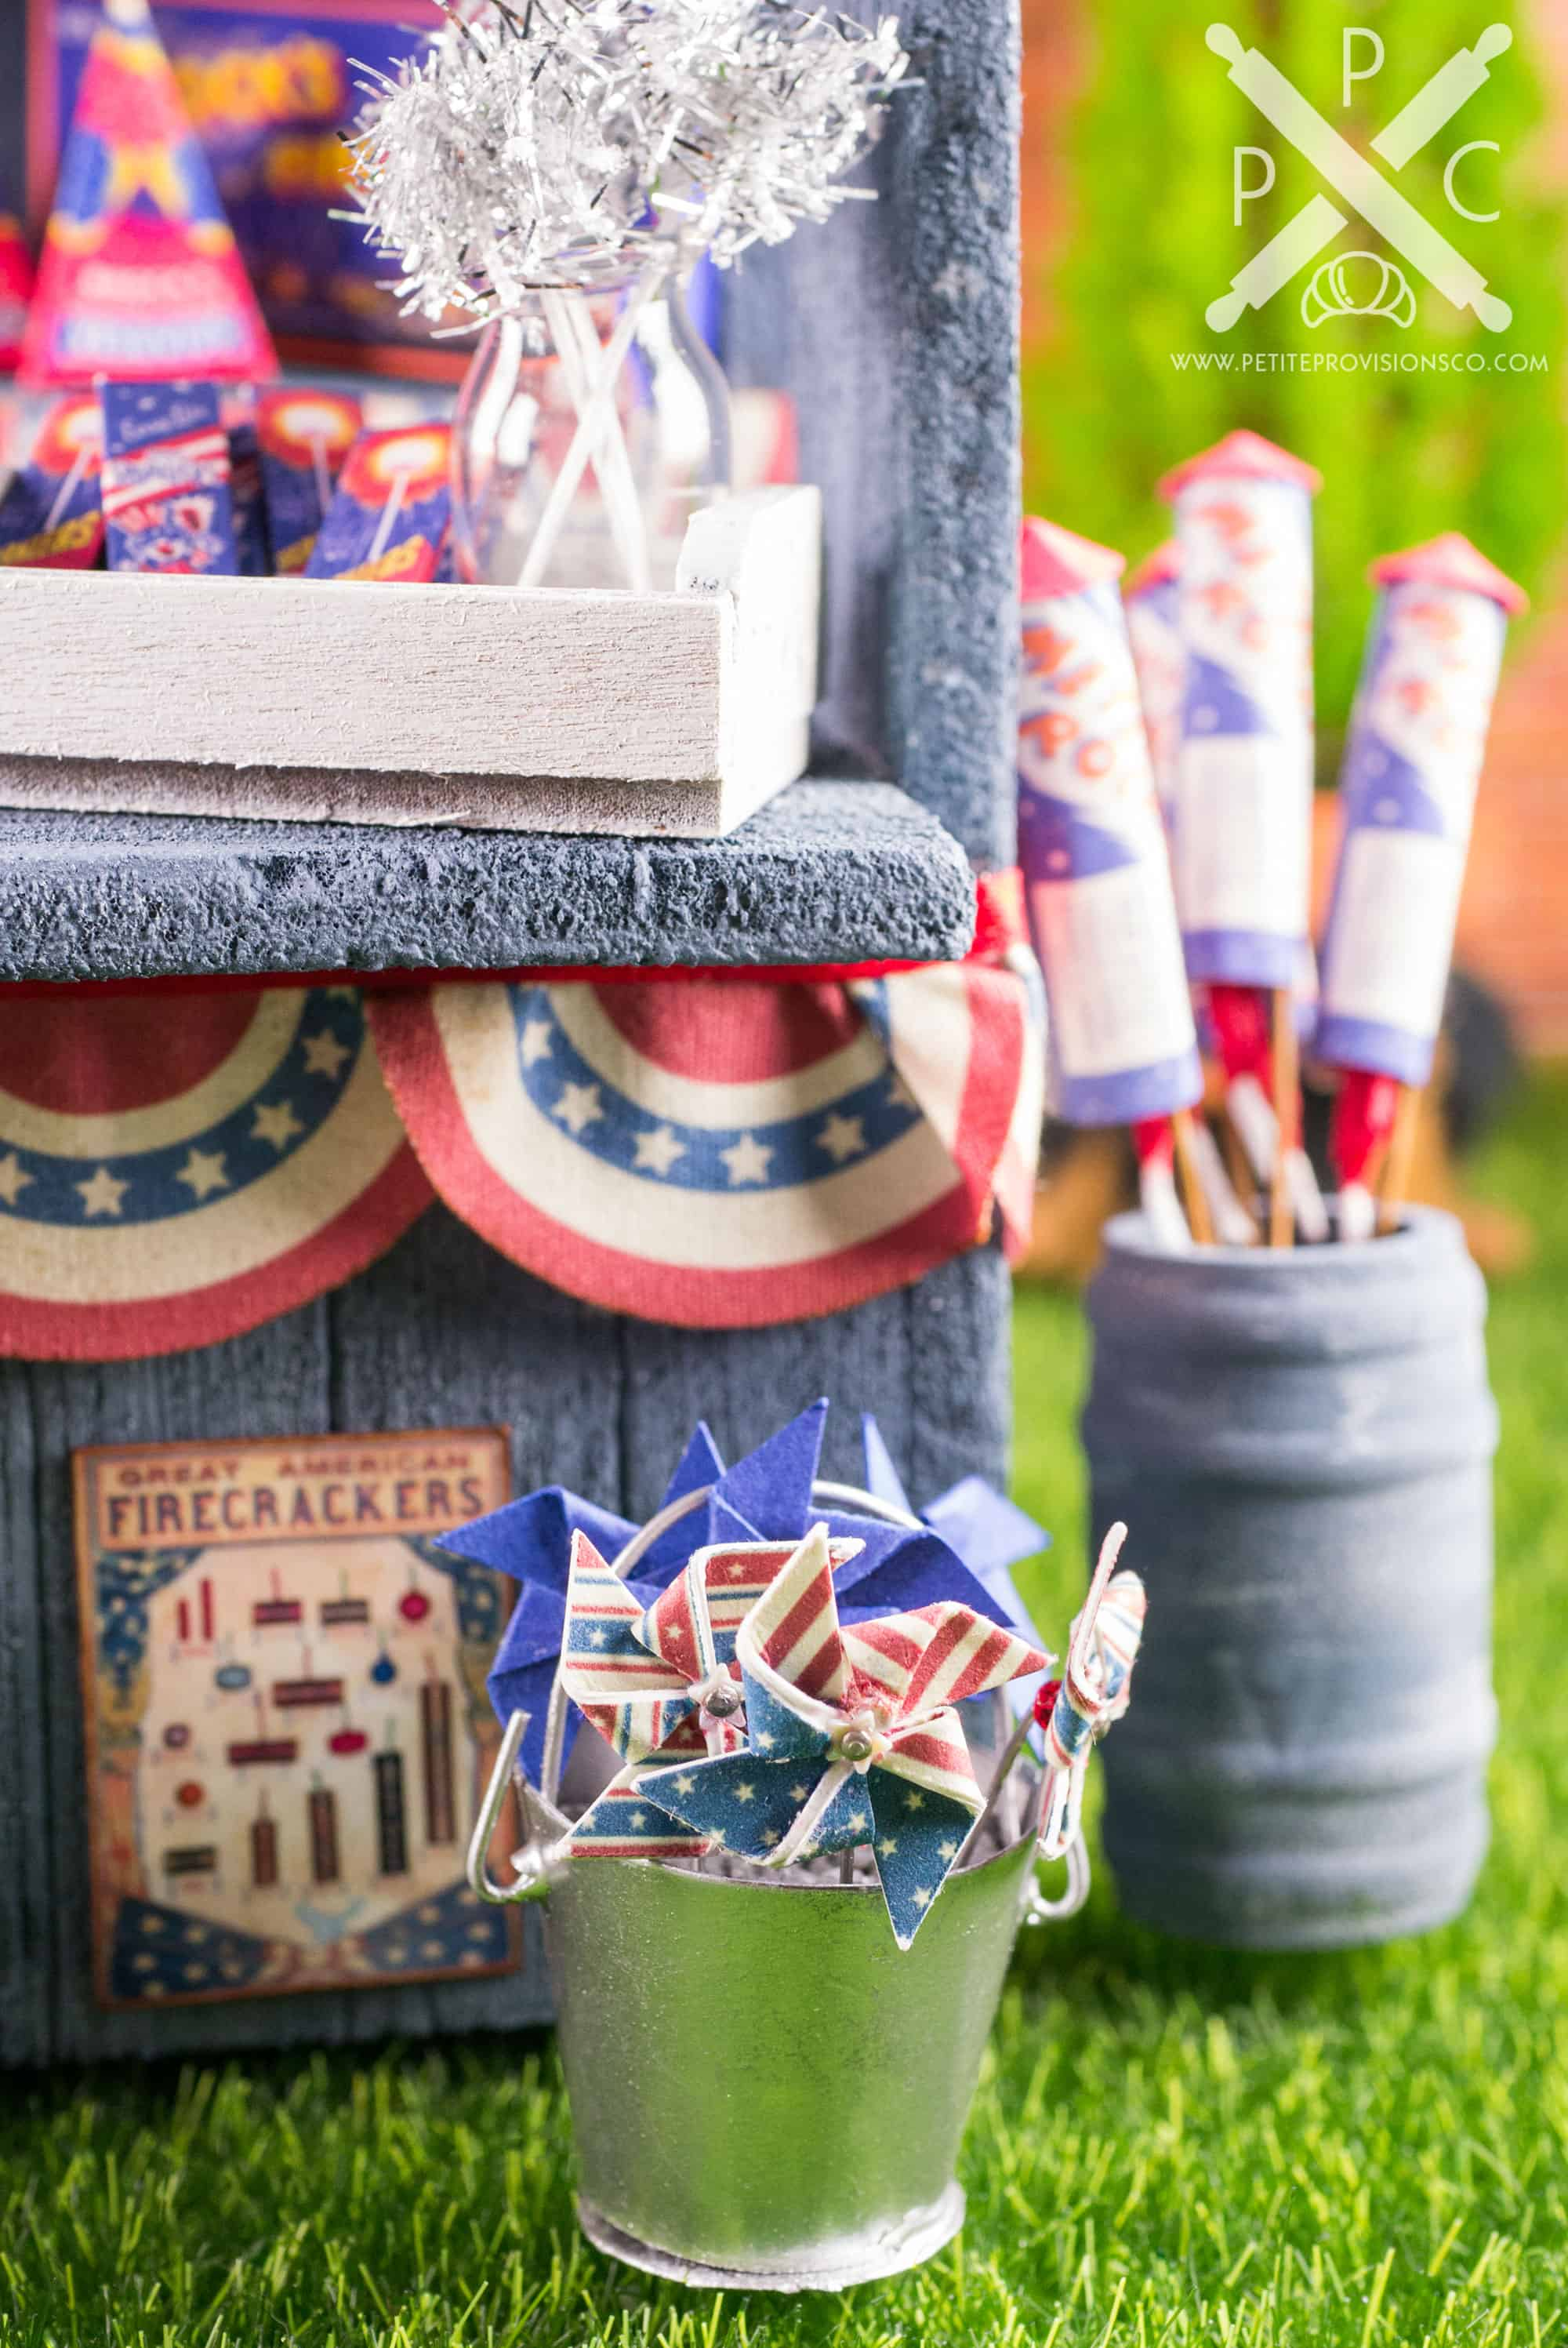 Dollhouse Miniature Roadside Fireworks Stand by The Petite Provisions Co. - Mini Pinwheels